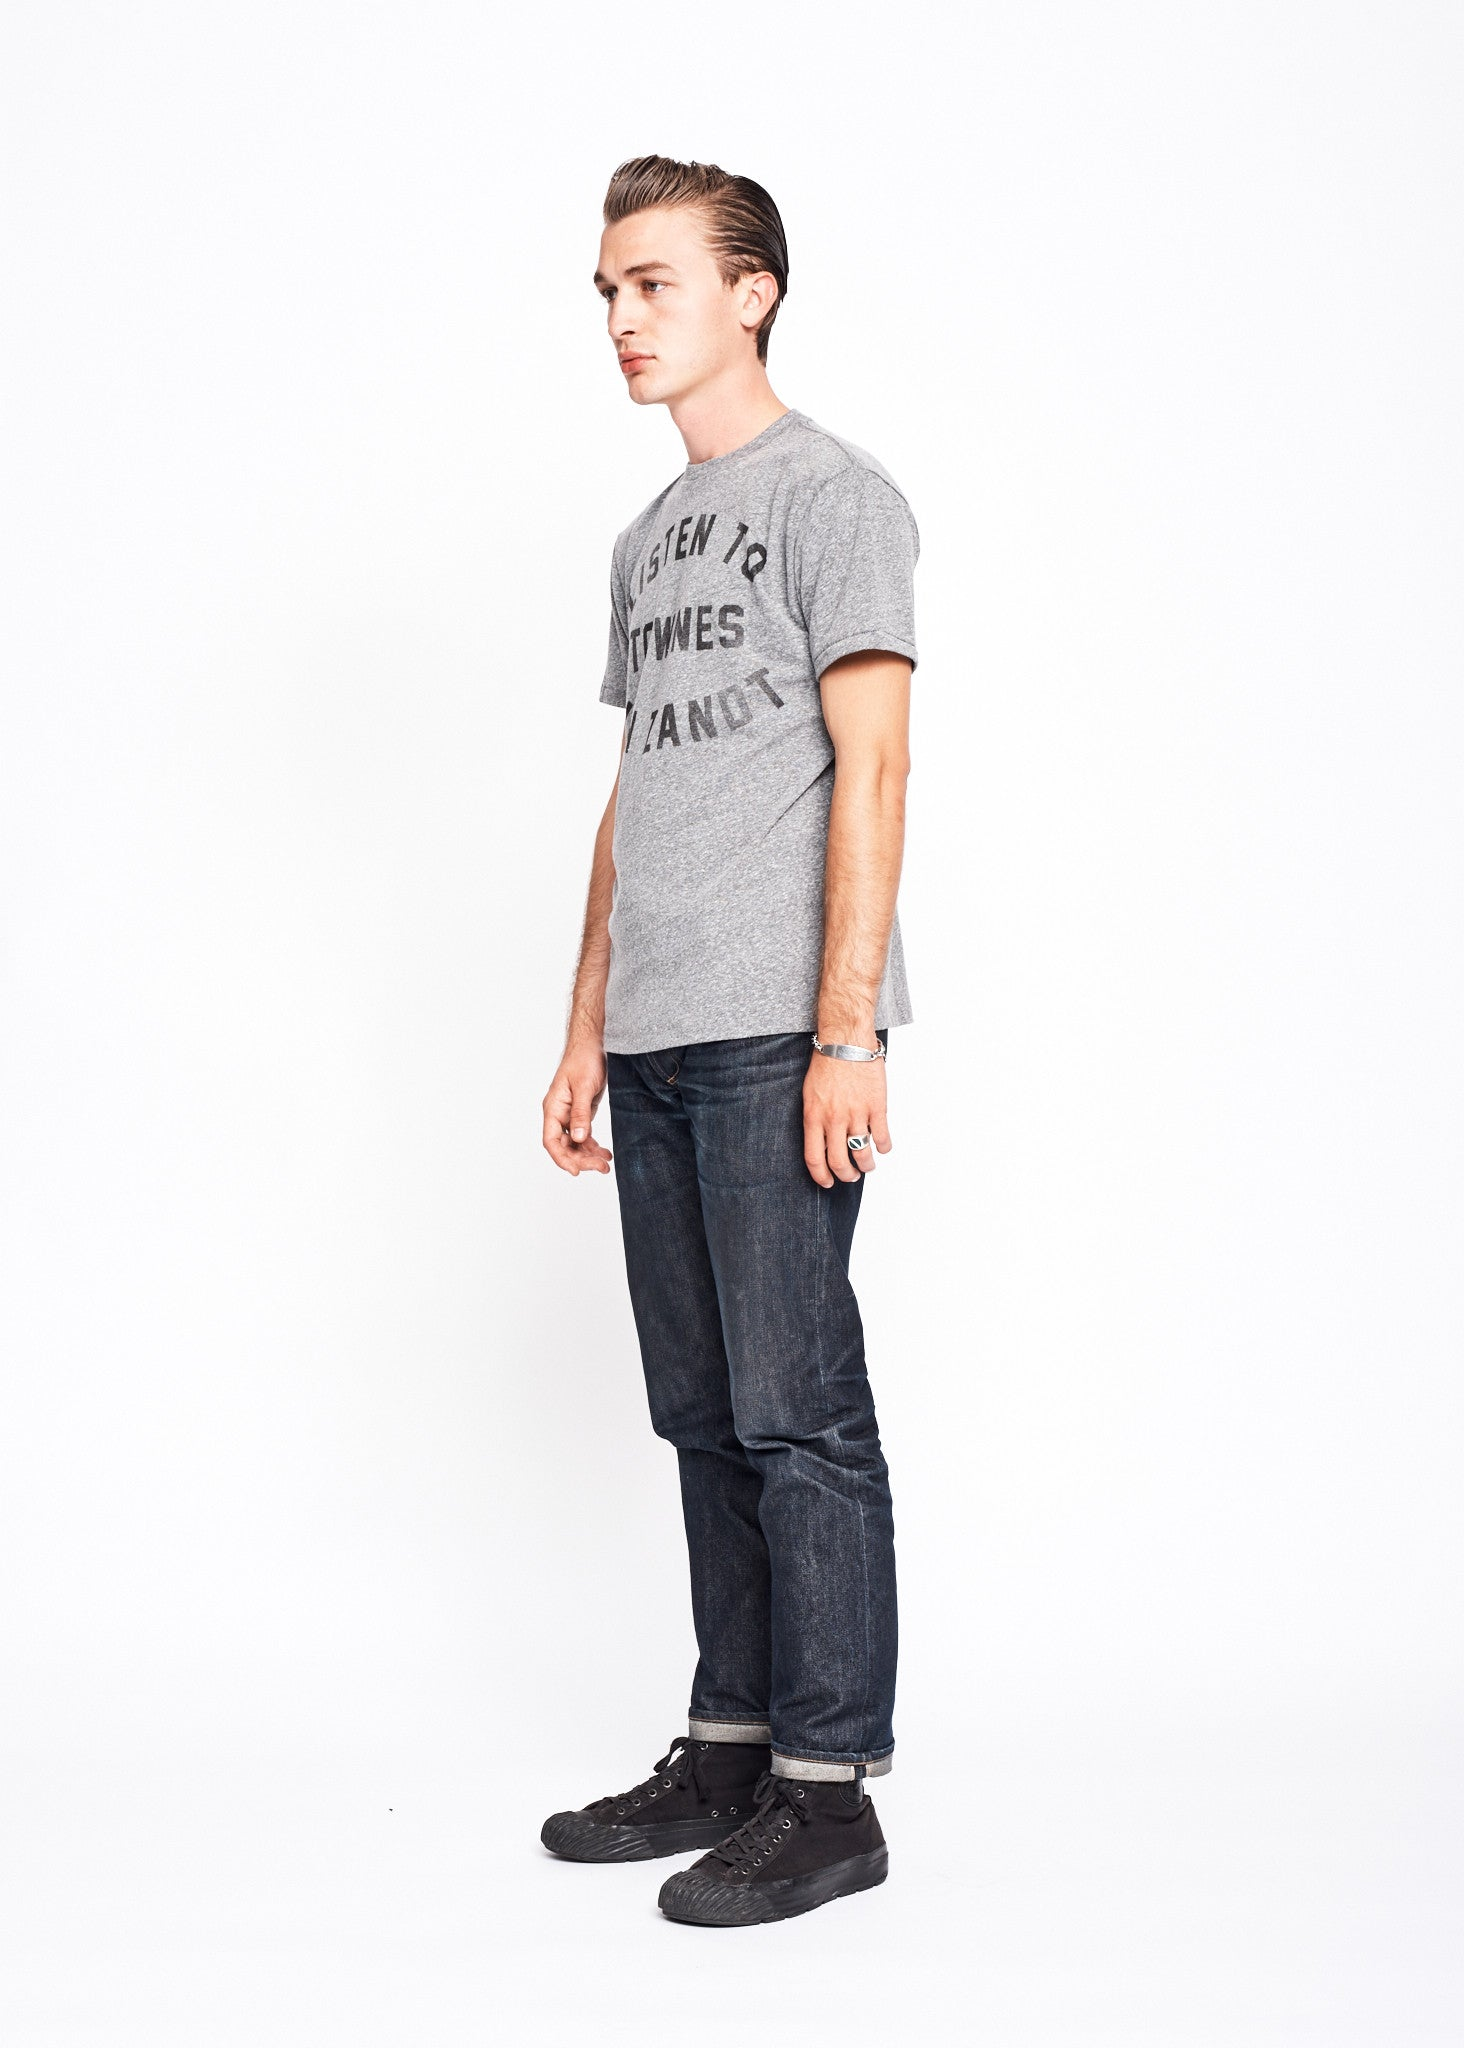 Listen to Townes Van Zandt Men's Crew - Heather Grey